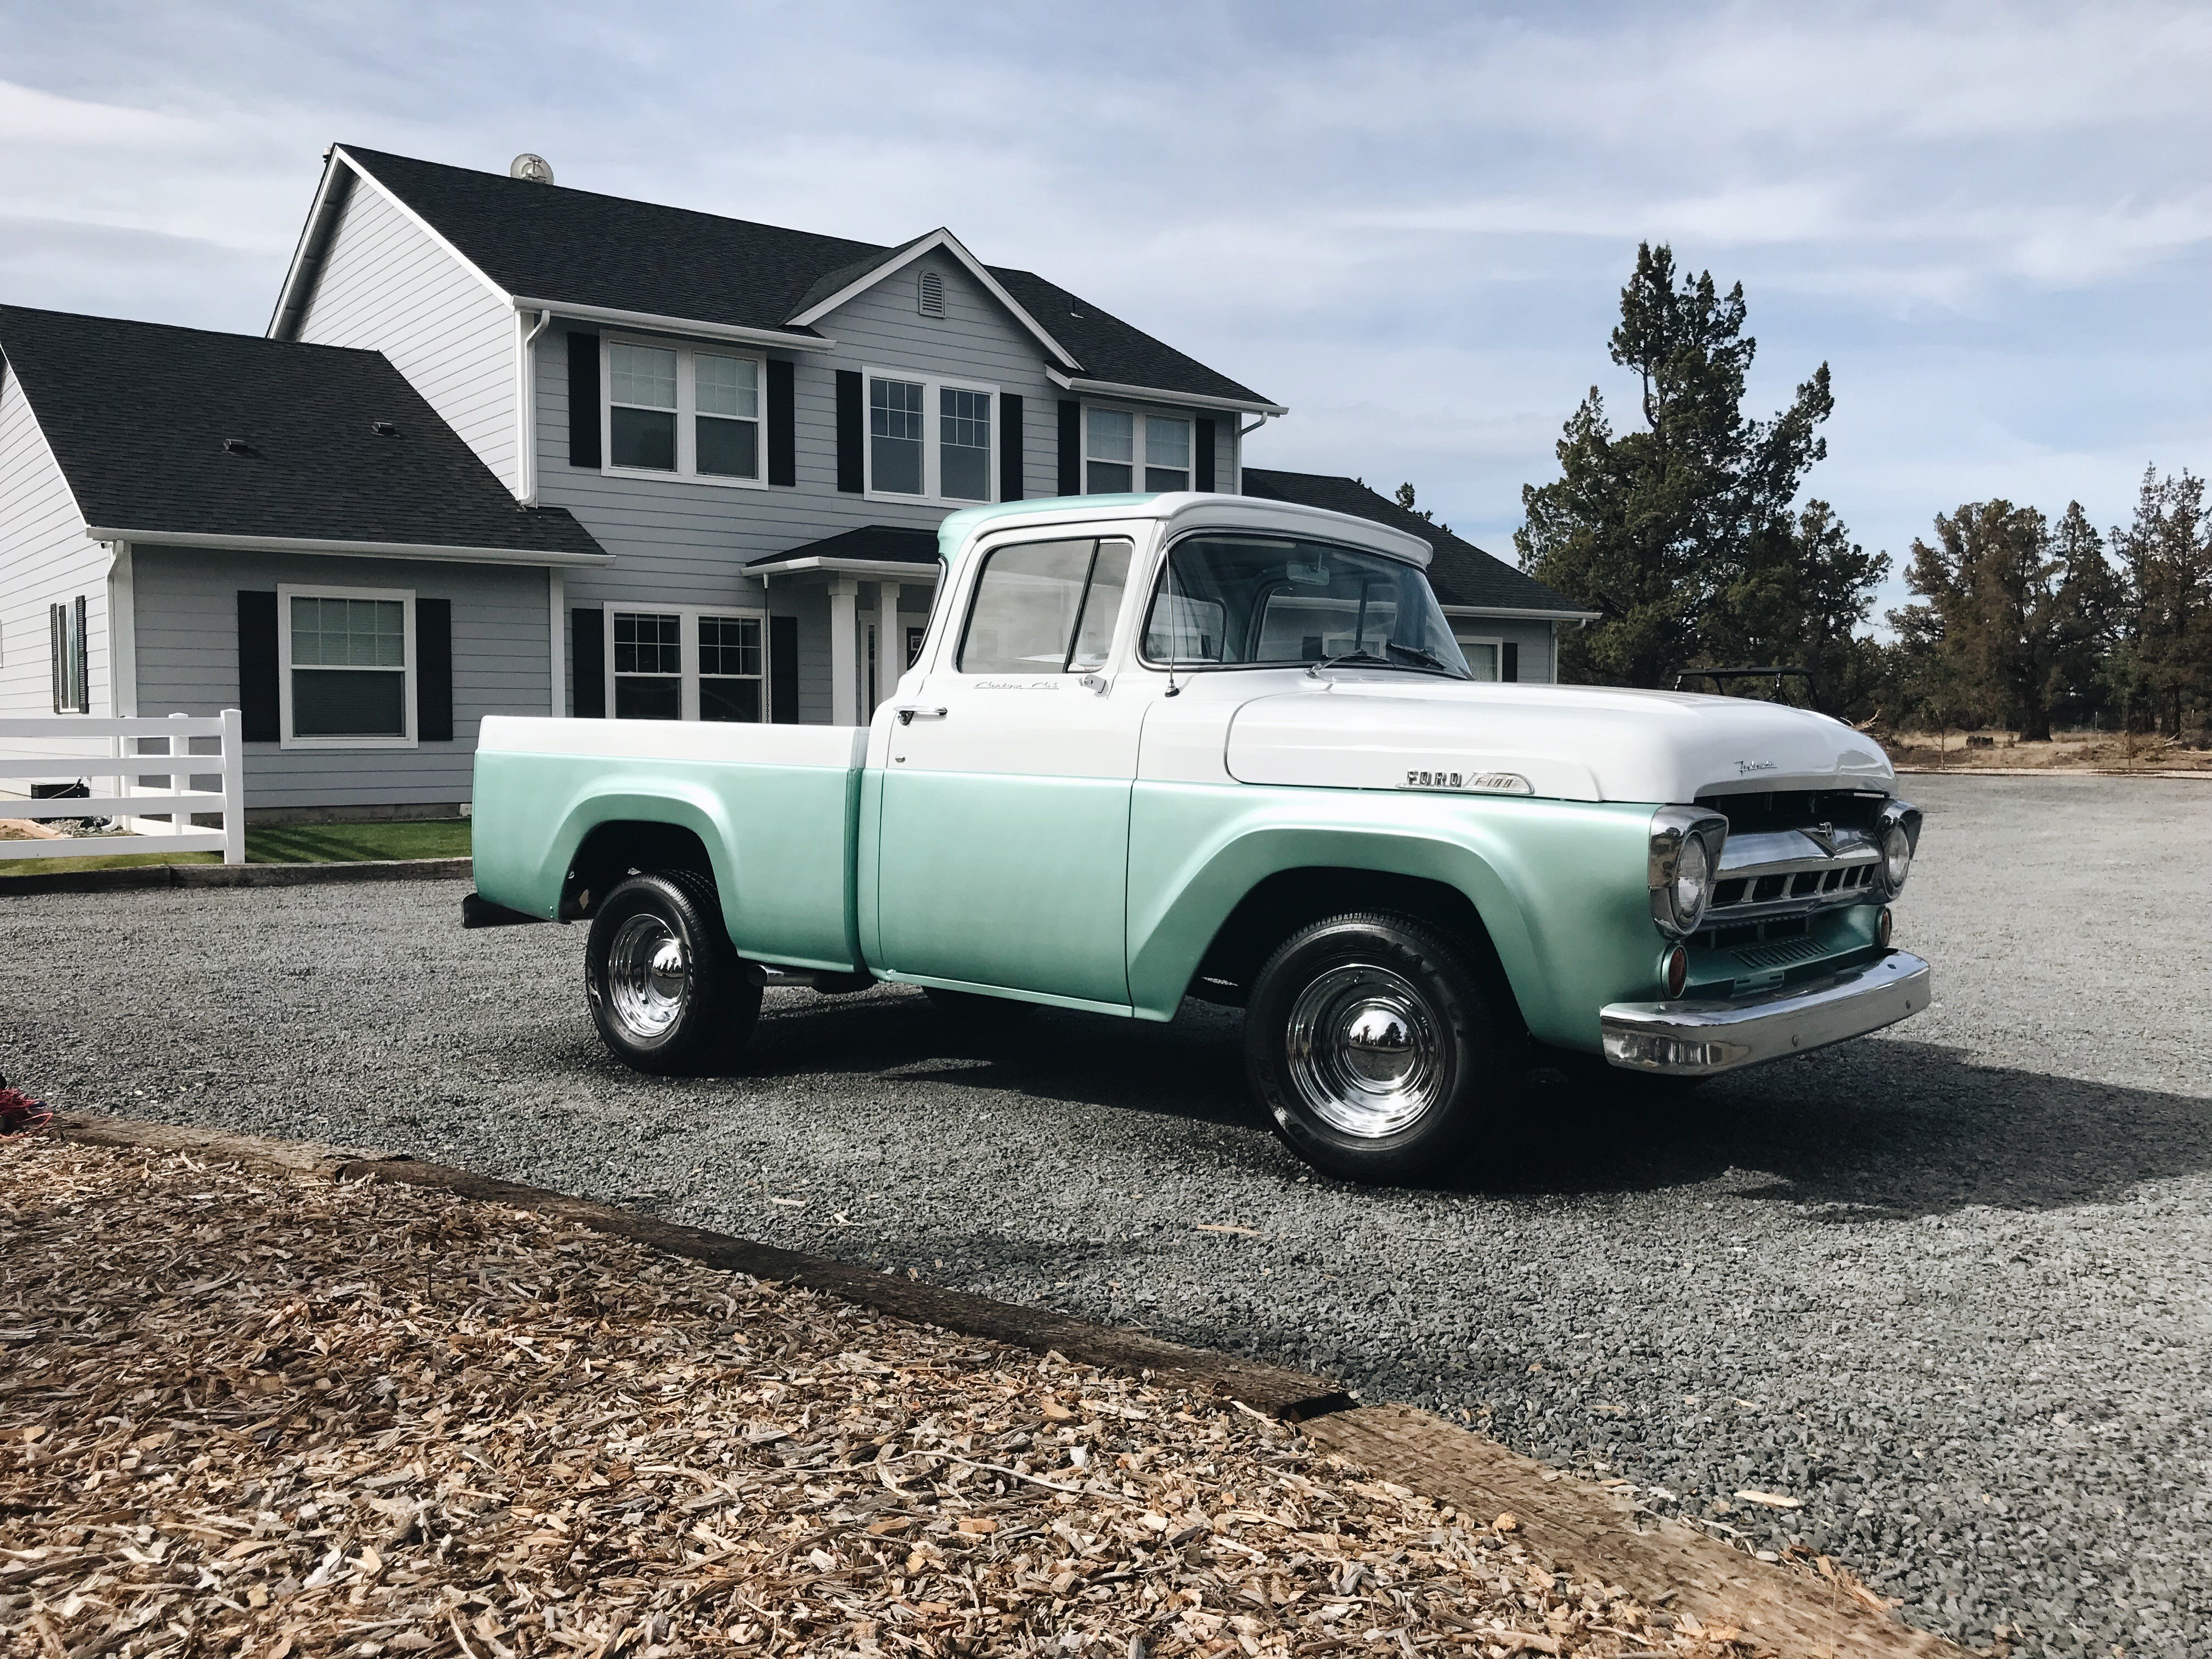 1957 Ford F100 Classics For Sale On Autotrader 1955 V8 Conversion